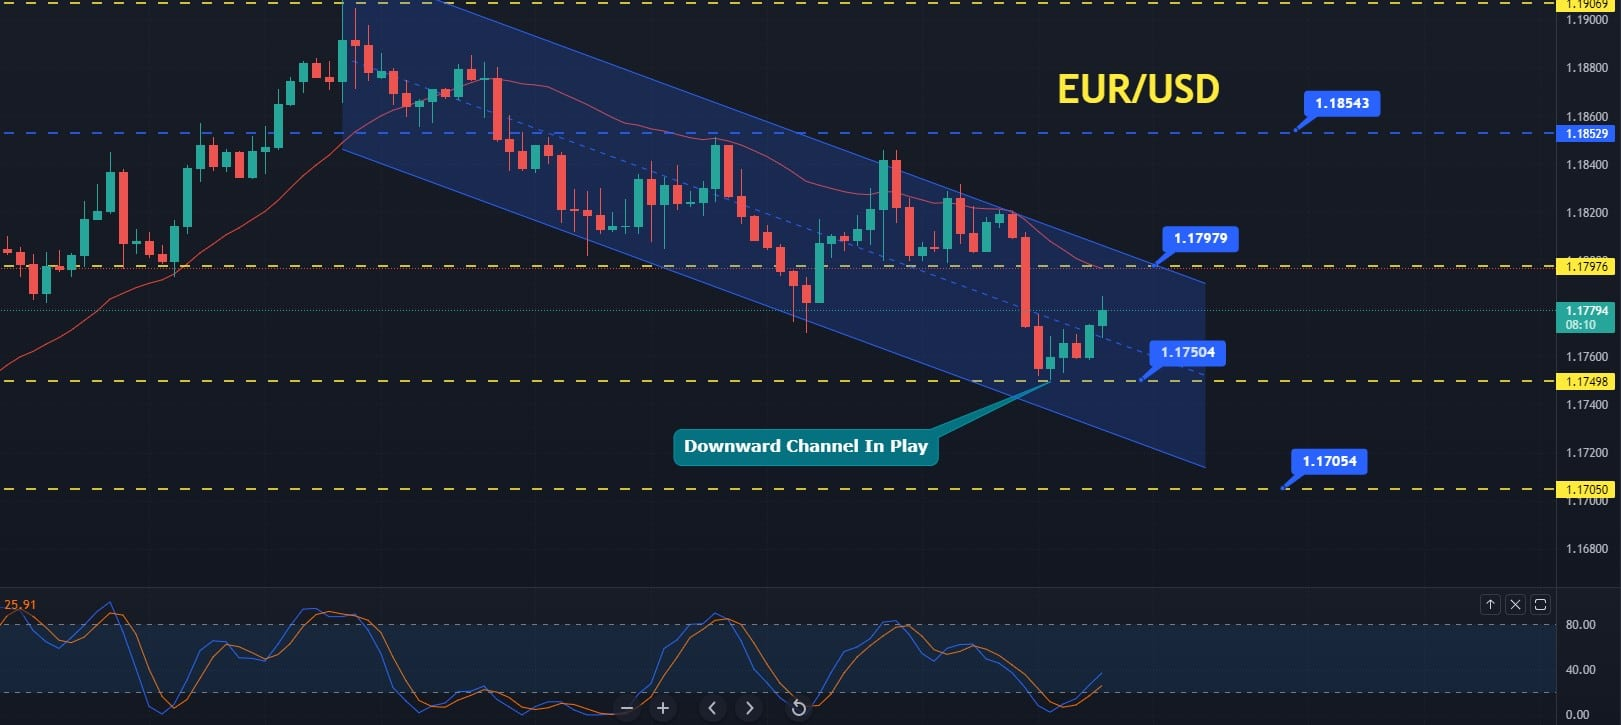 EUR/USD steady at $1.1830 as the market awaits European inflation figures